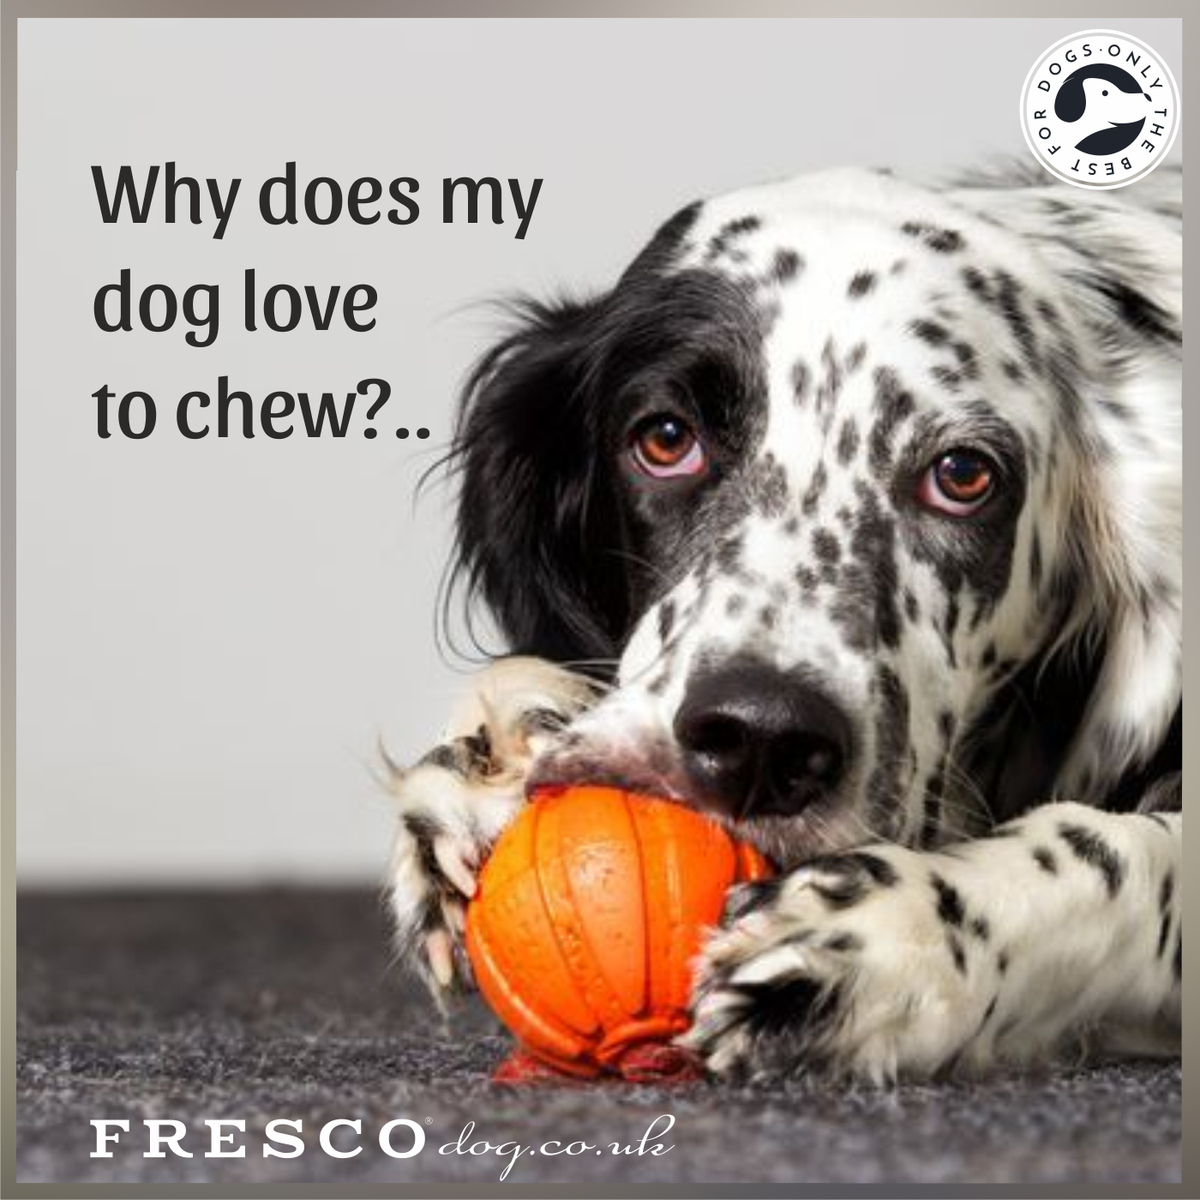 Why do dogs simply love to chew?